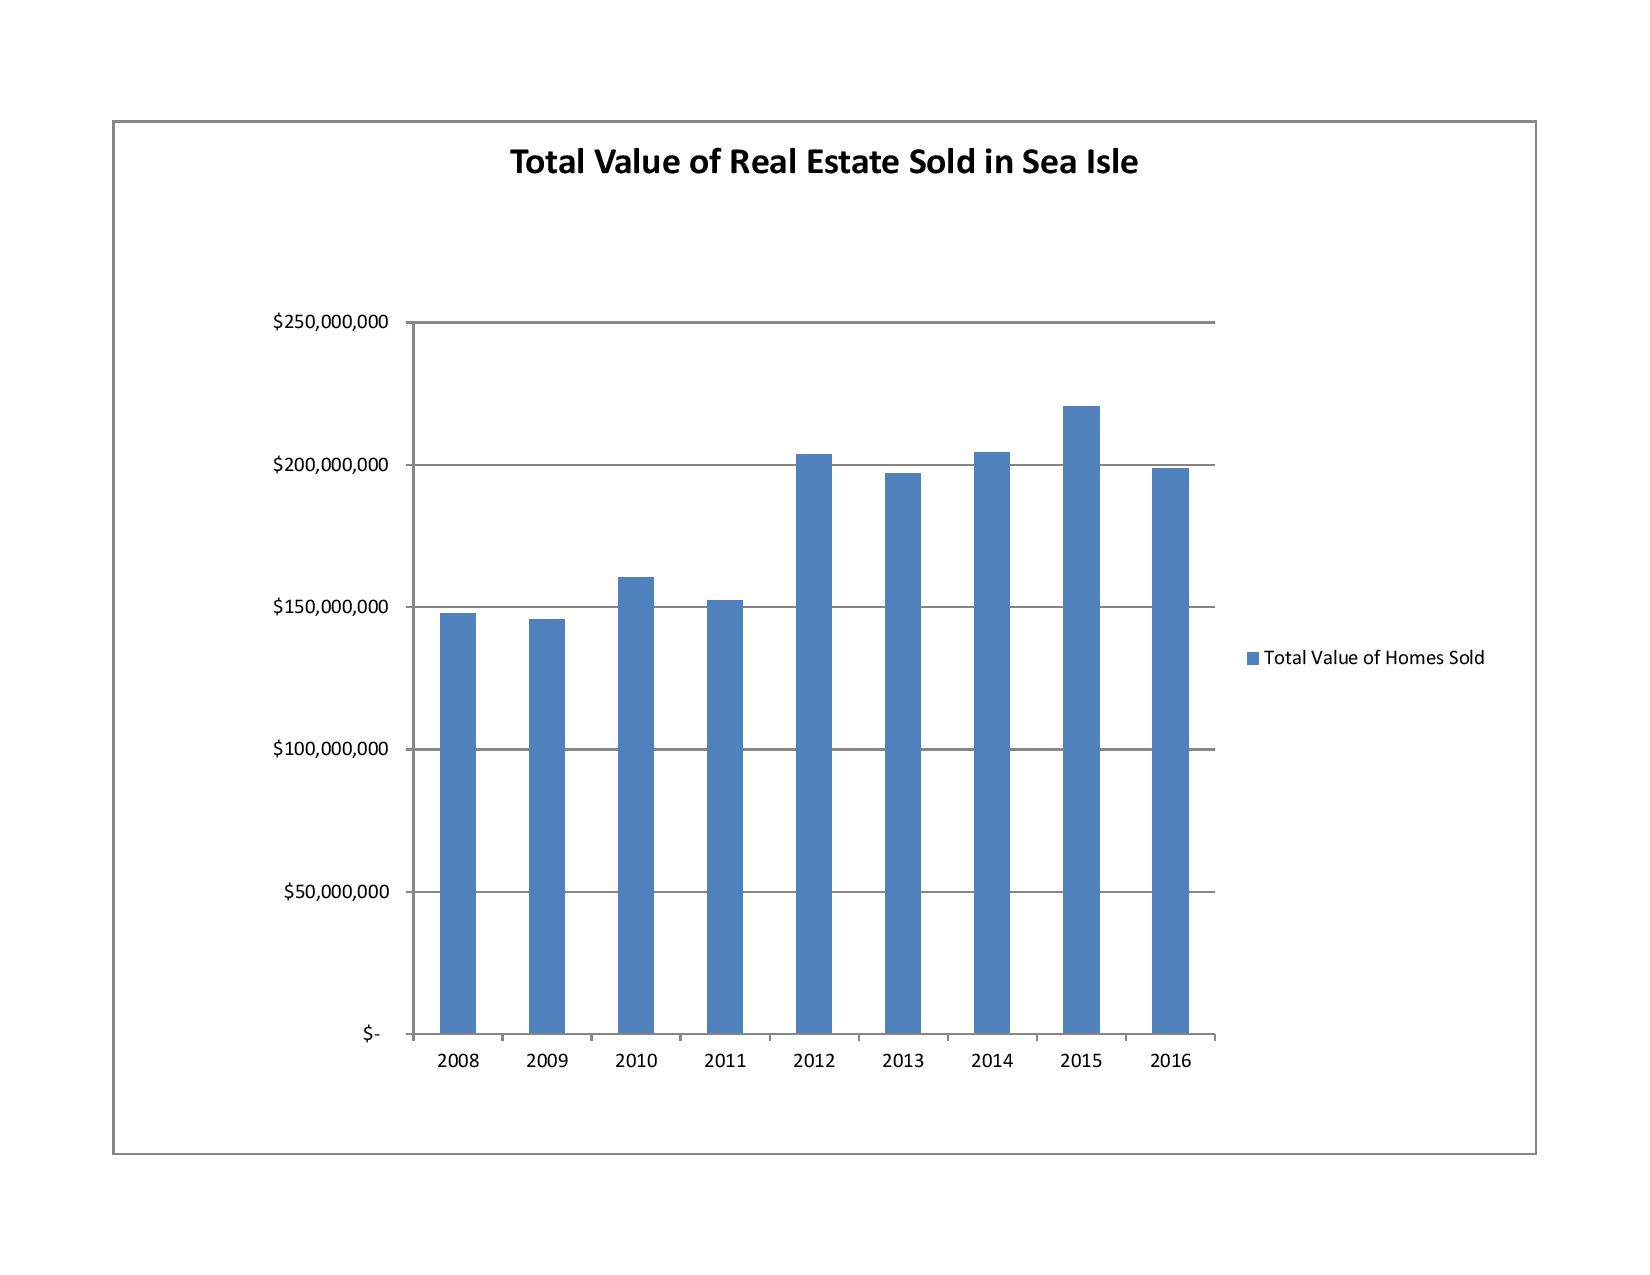 Total value of Real Estate Sold In Sea Isle